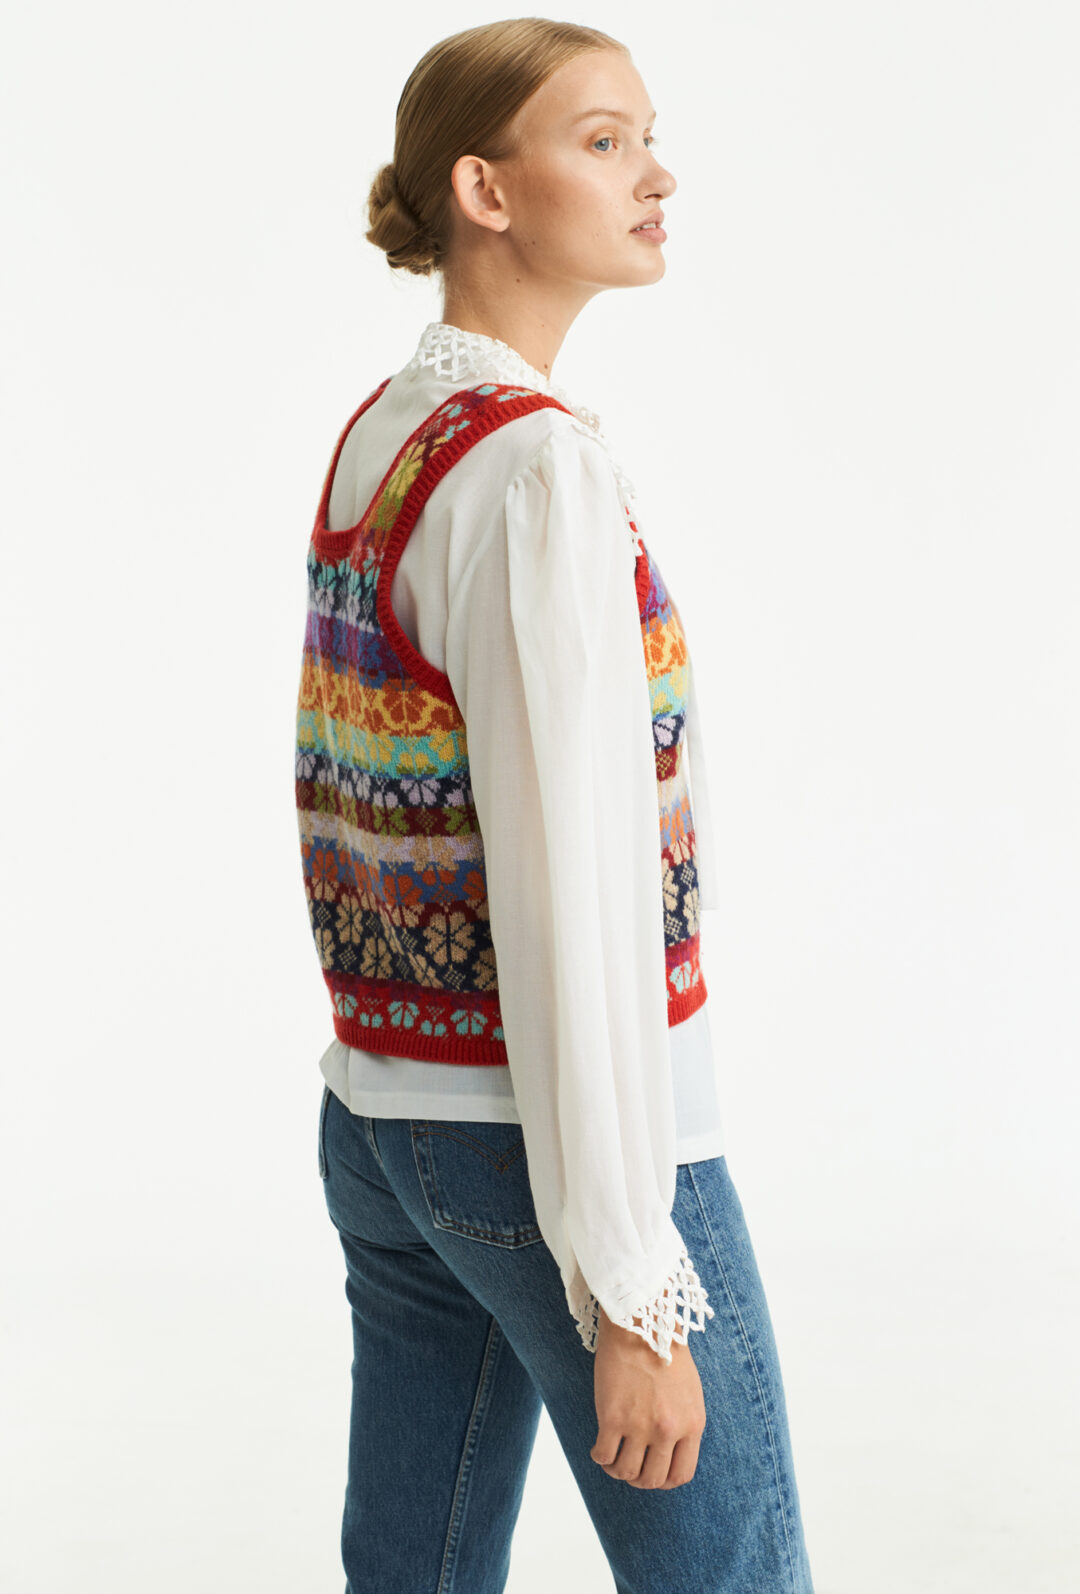 Collect23_knit vest